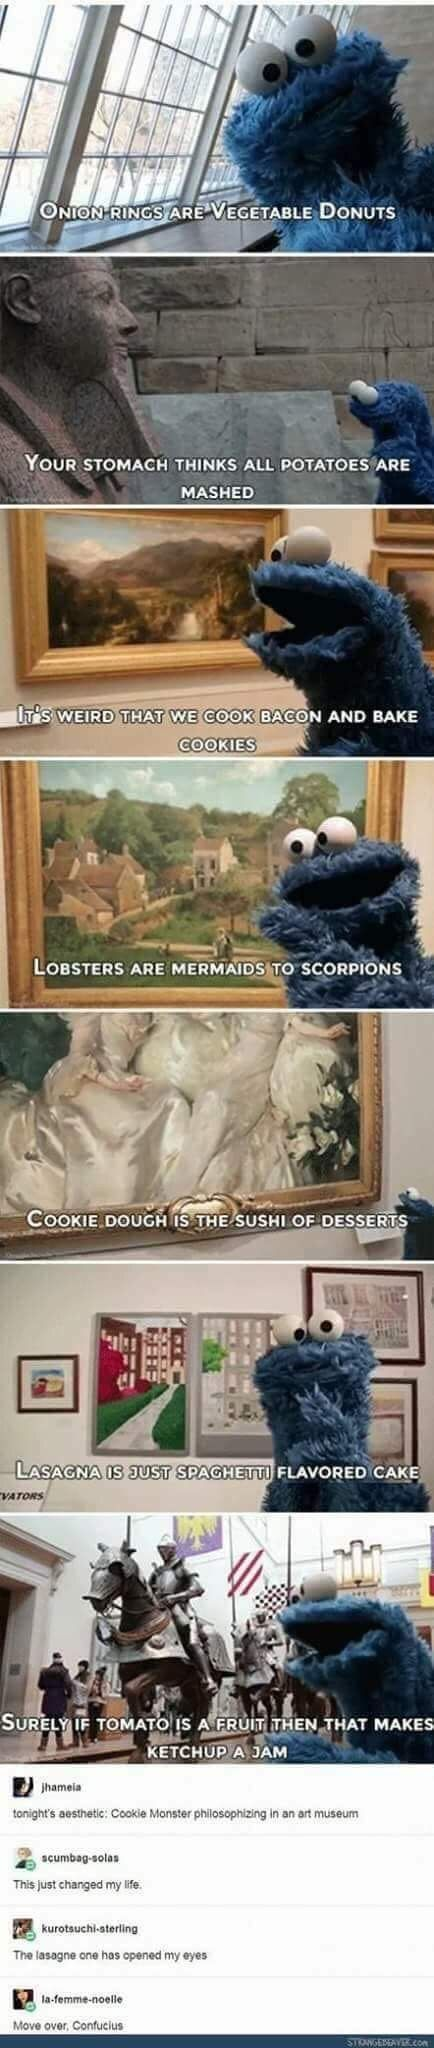 Cookie monster understands it all... - meme